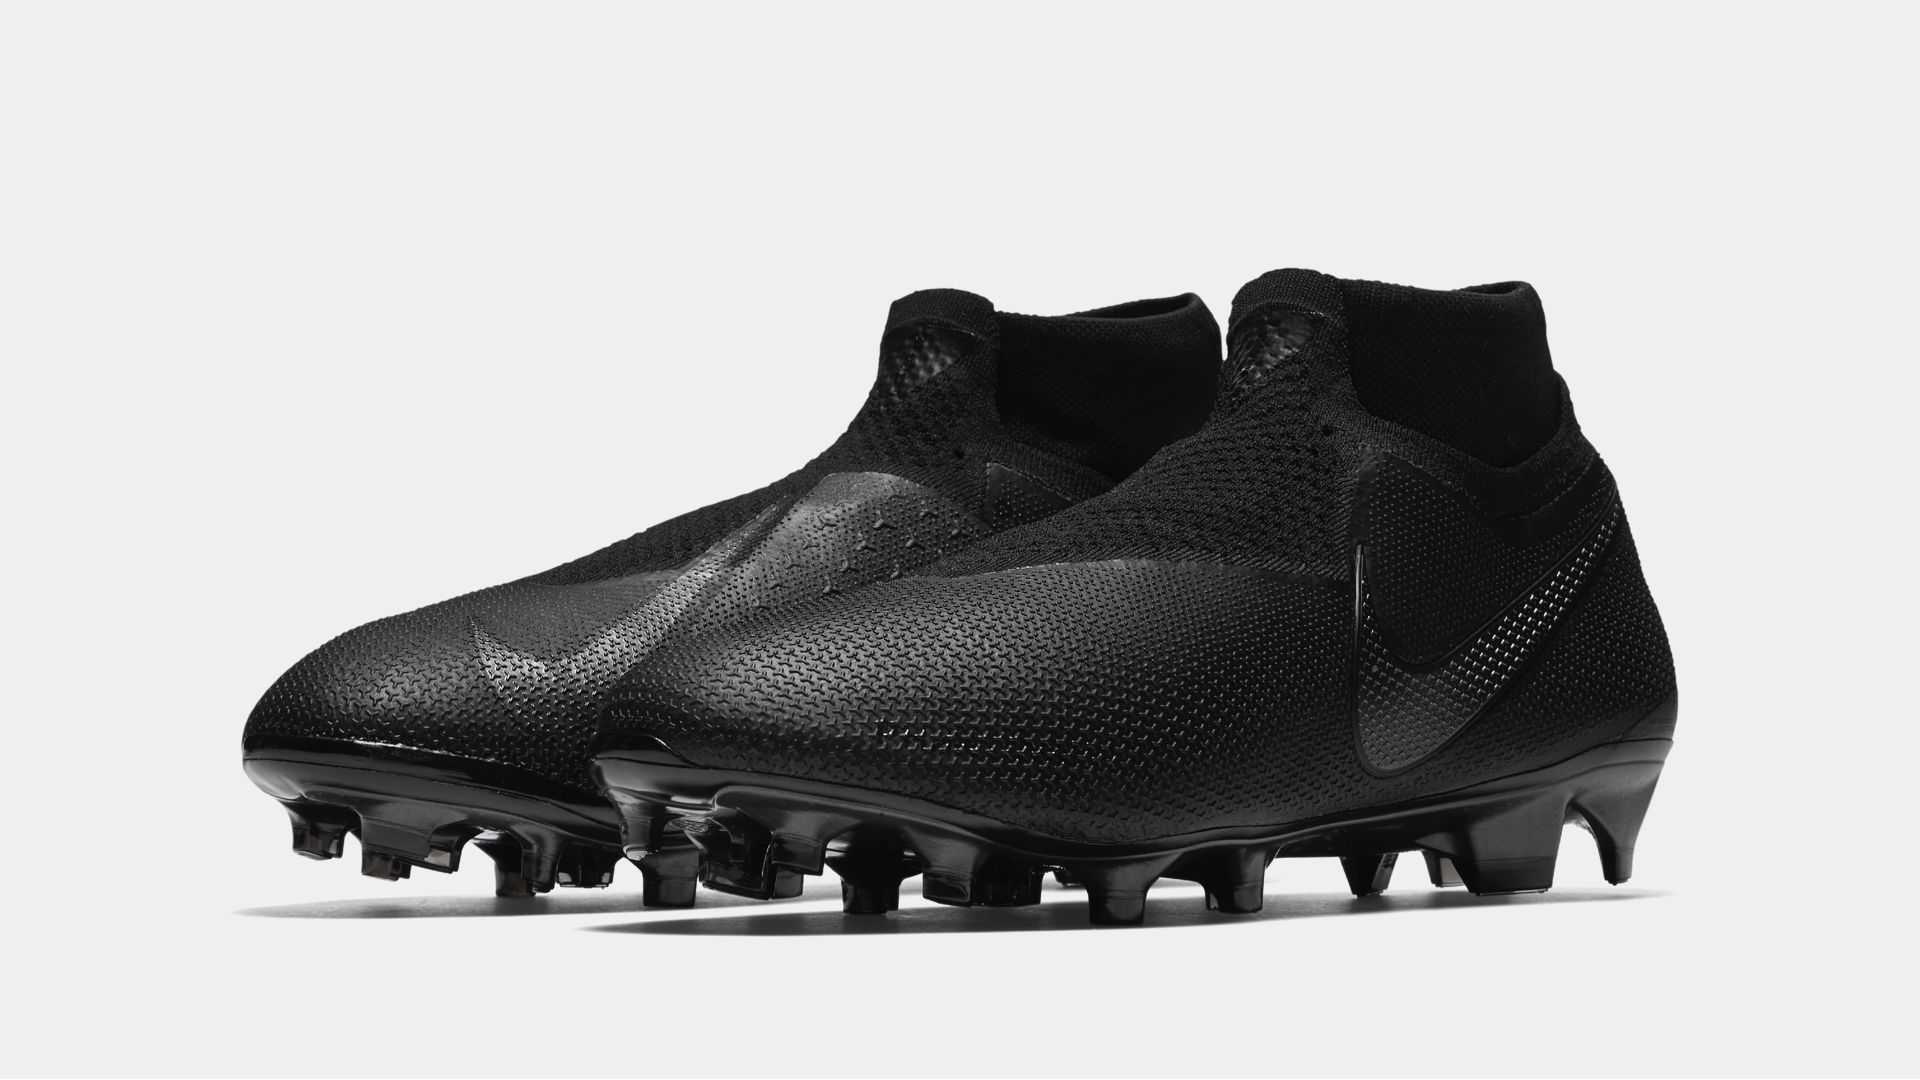 Kevin De Bruyne Football Boots 2019